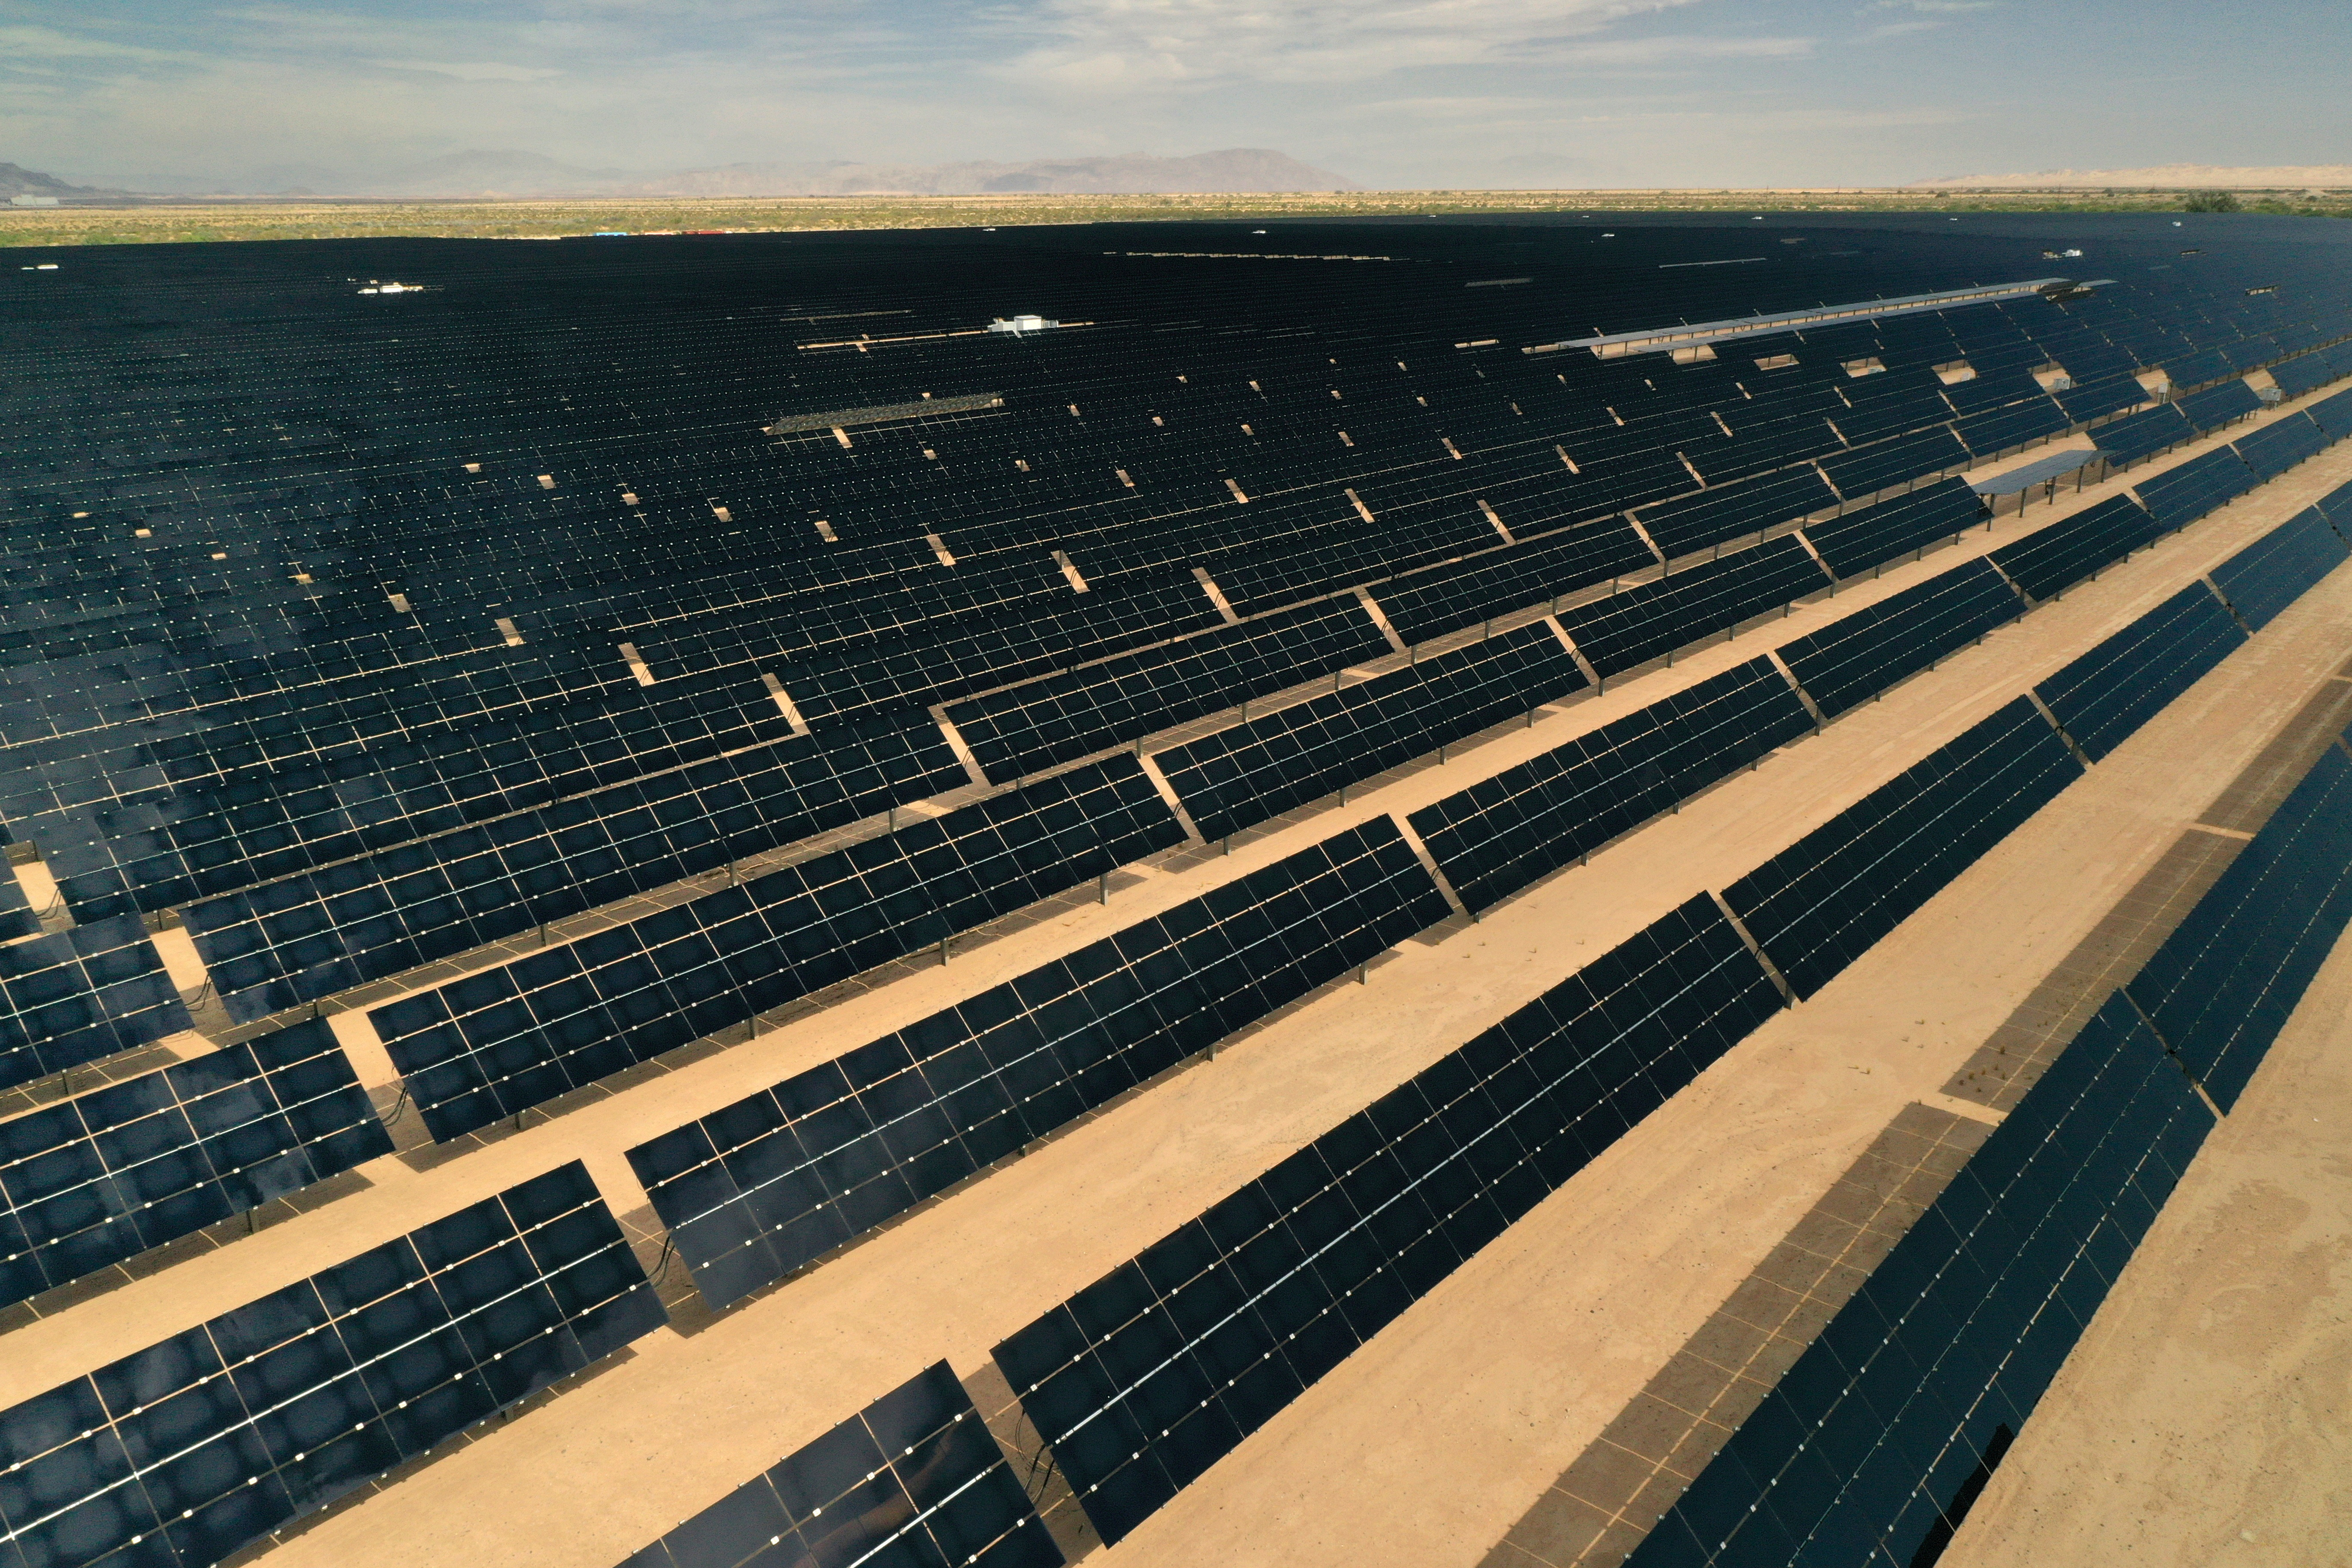 Arrays of photovoltaic solar panels are seen at the Tenaska Imperial Solar Energy Center South in this aerial photo taken over El Centro, California, U.S., May 29, 2020. Picture taken with a drone. REUTERS/Bing Guan